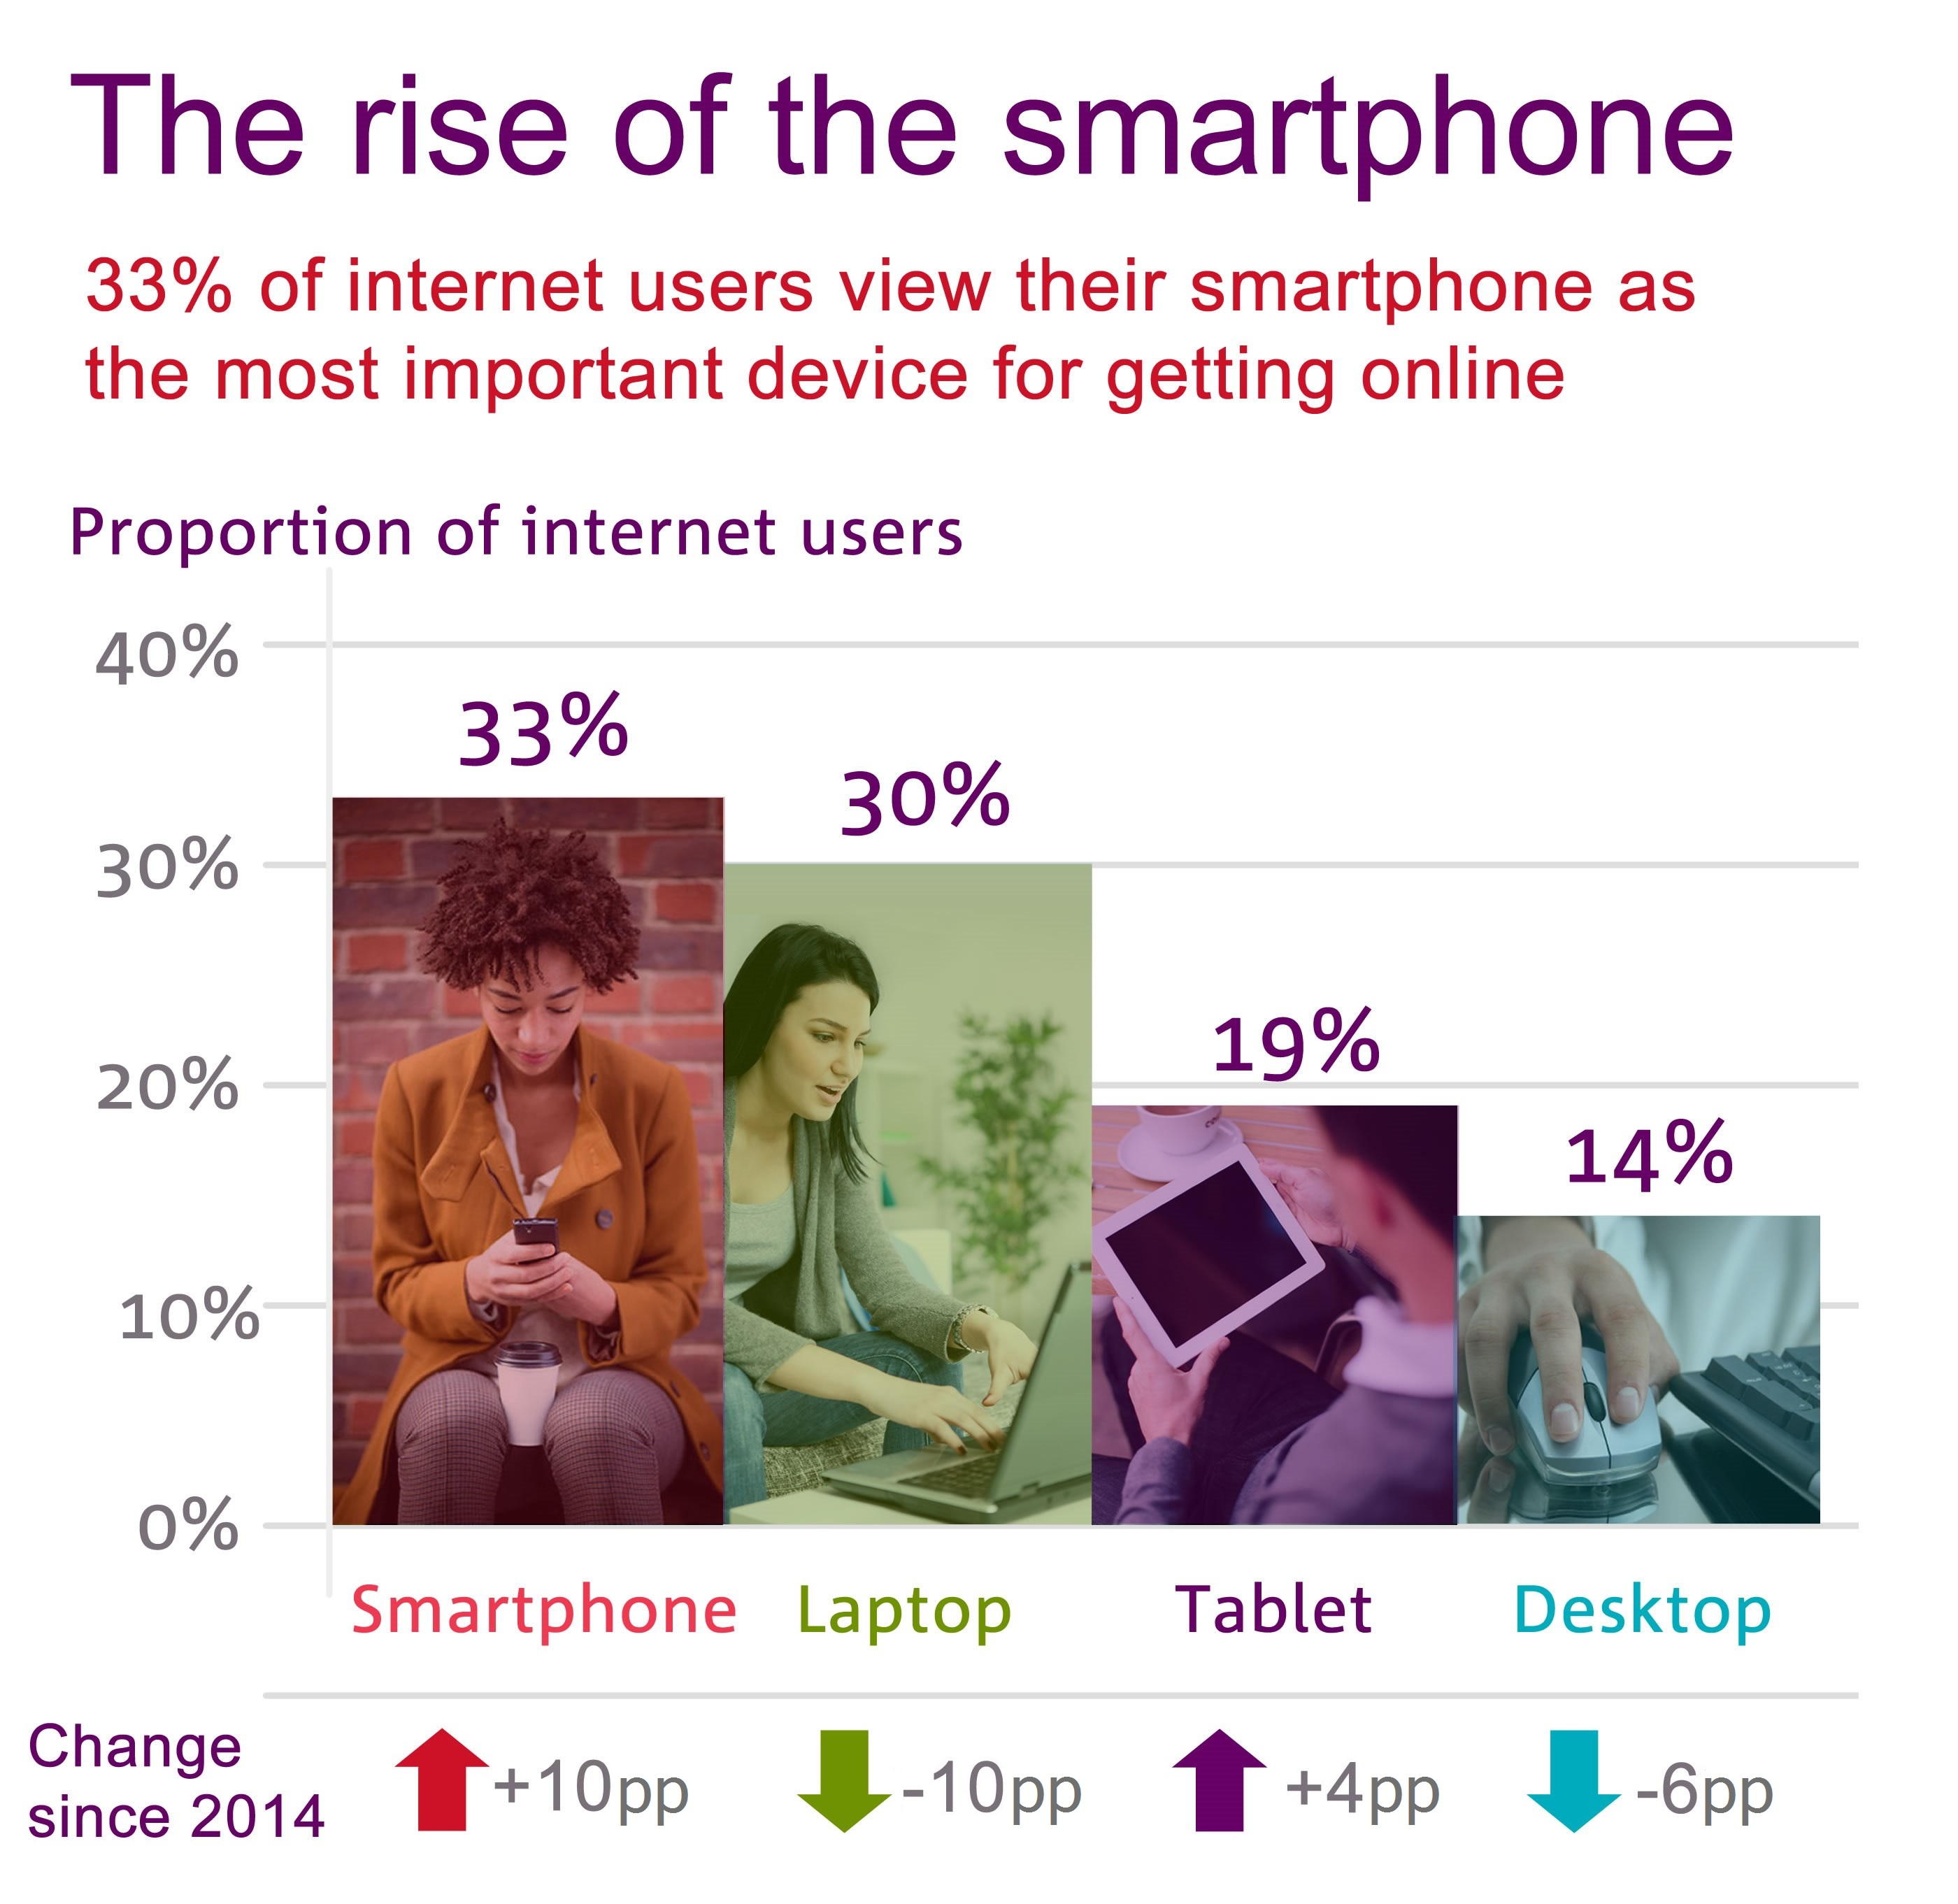 The rise of the smartphone